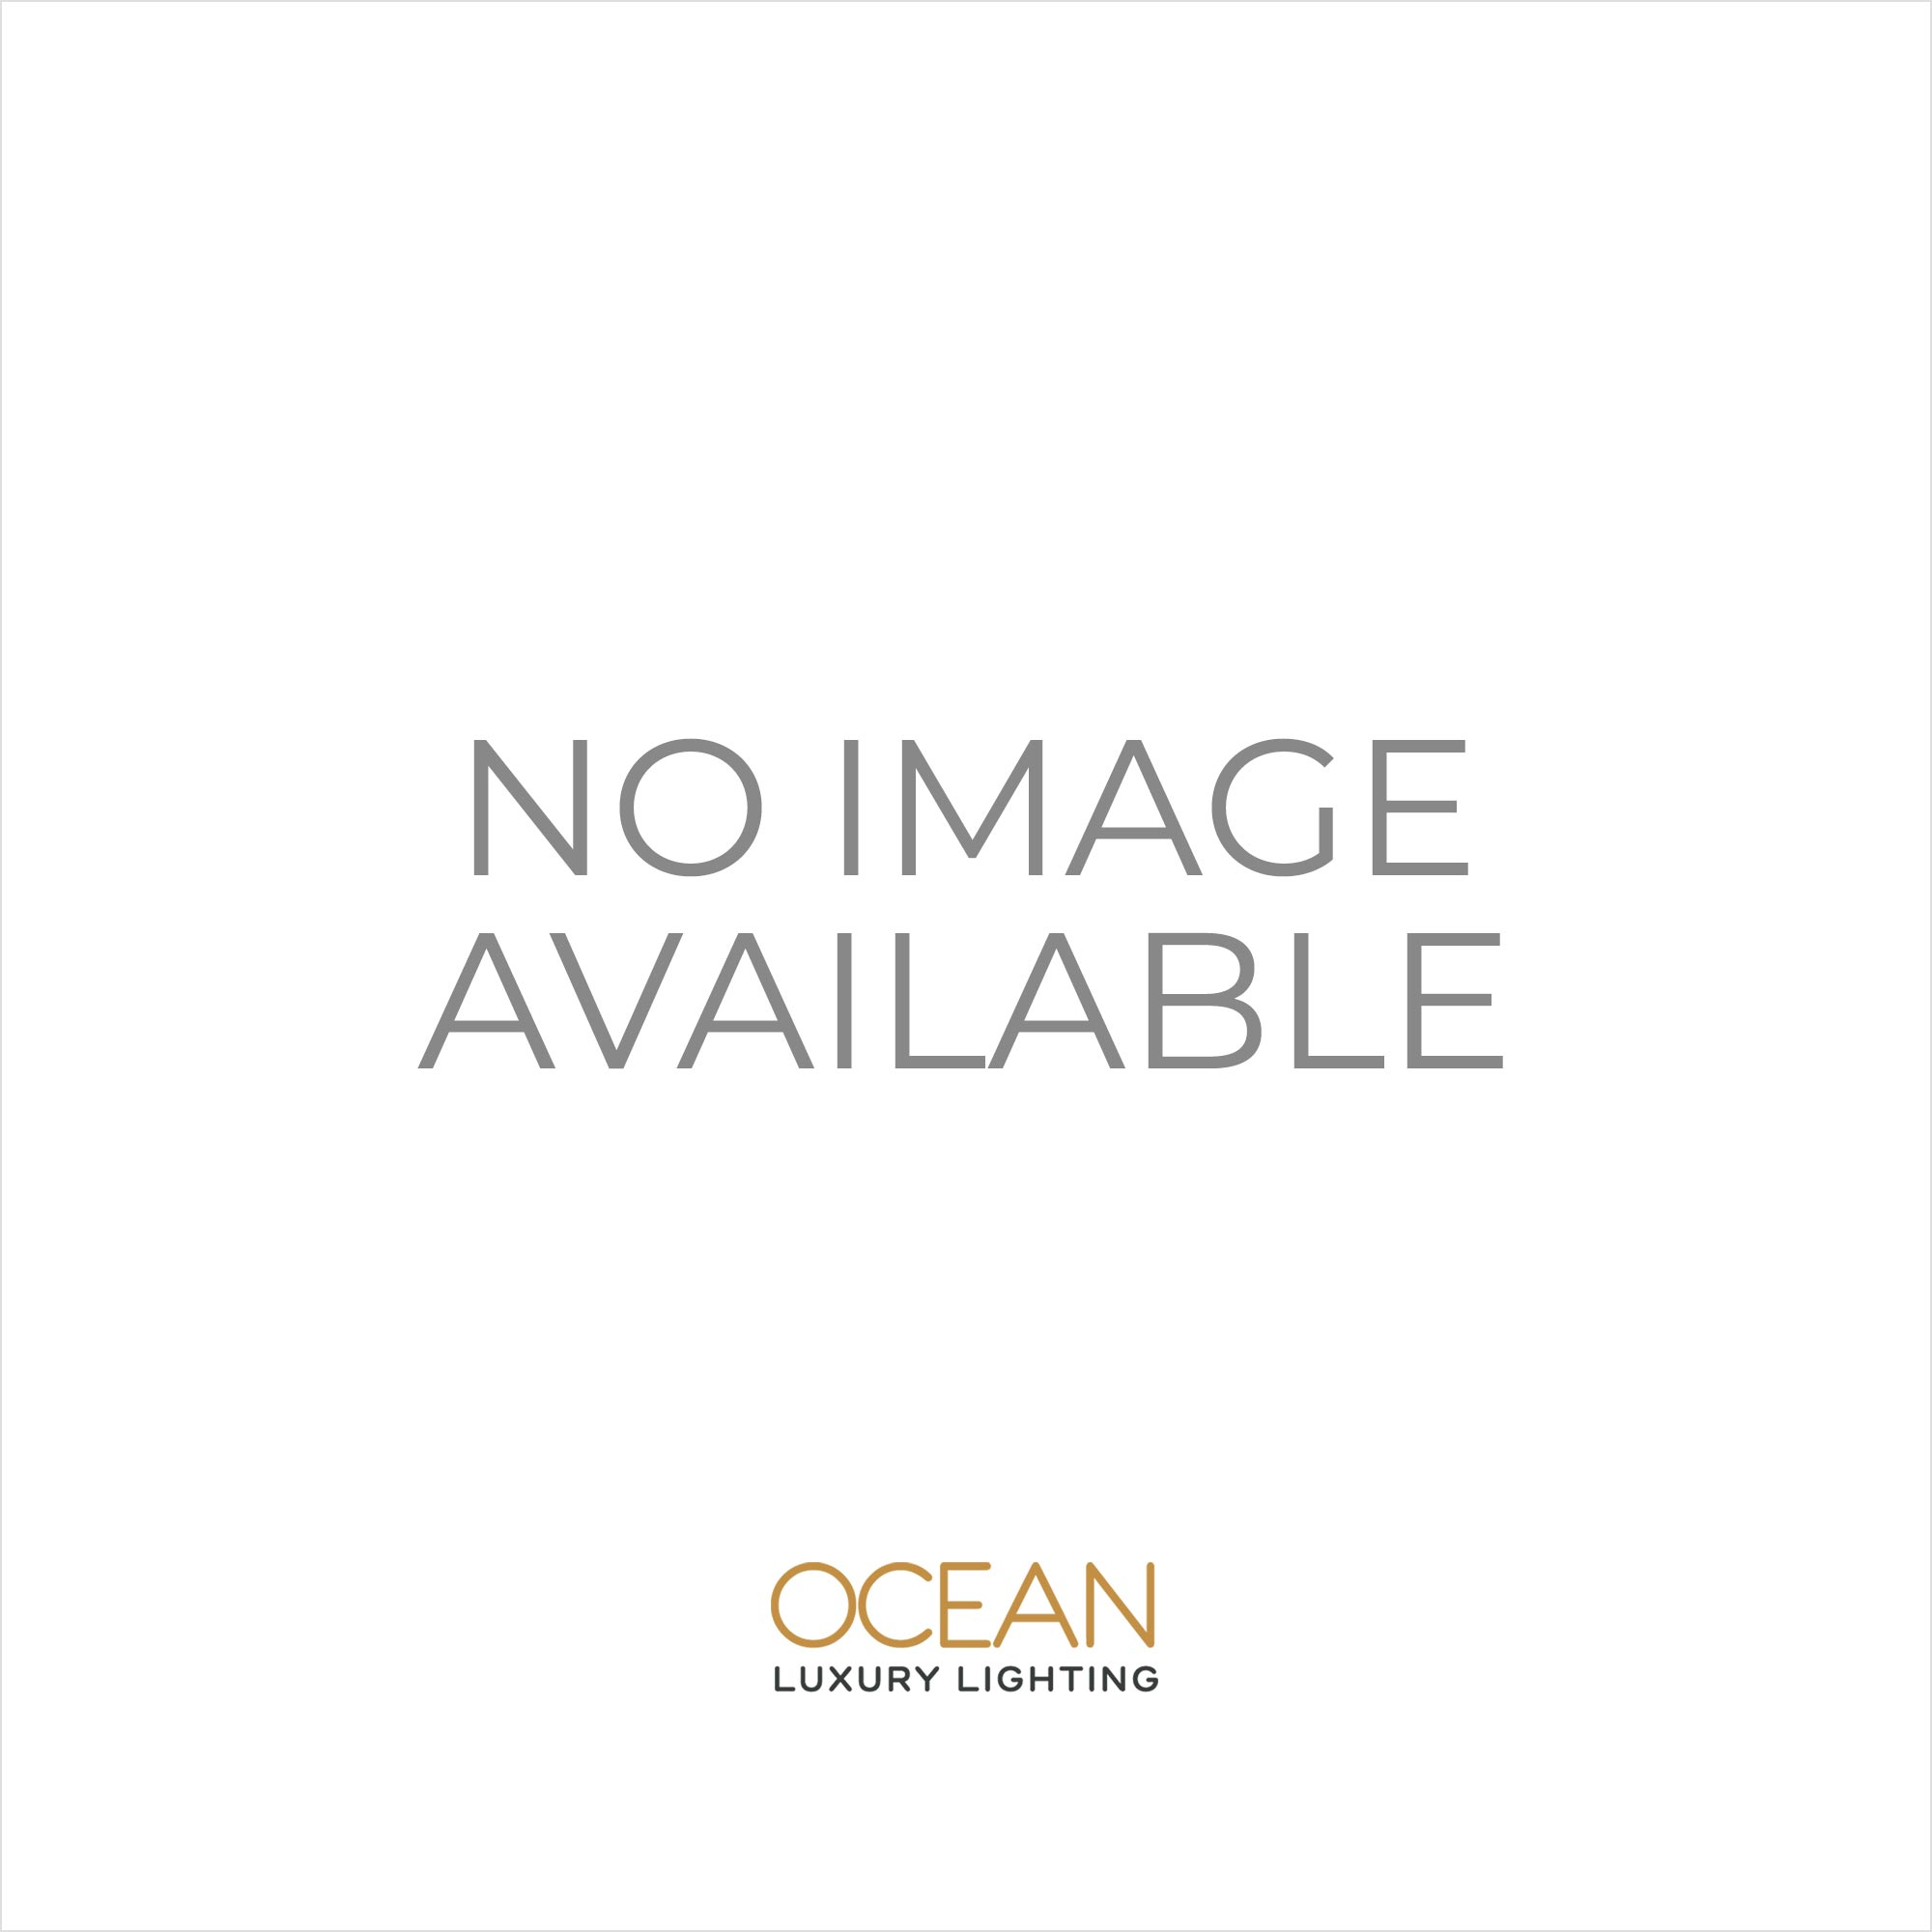 Dar CYR5046/28LE Cyro 1 light modern bathroom flush ceiling light IP44 rated stainless steel finish